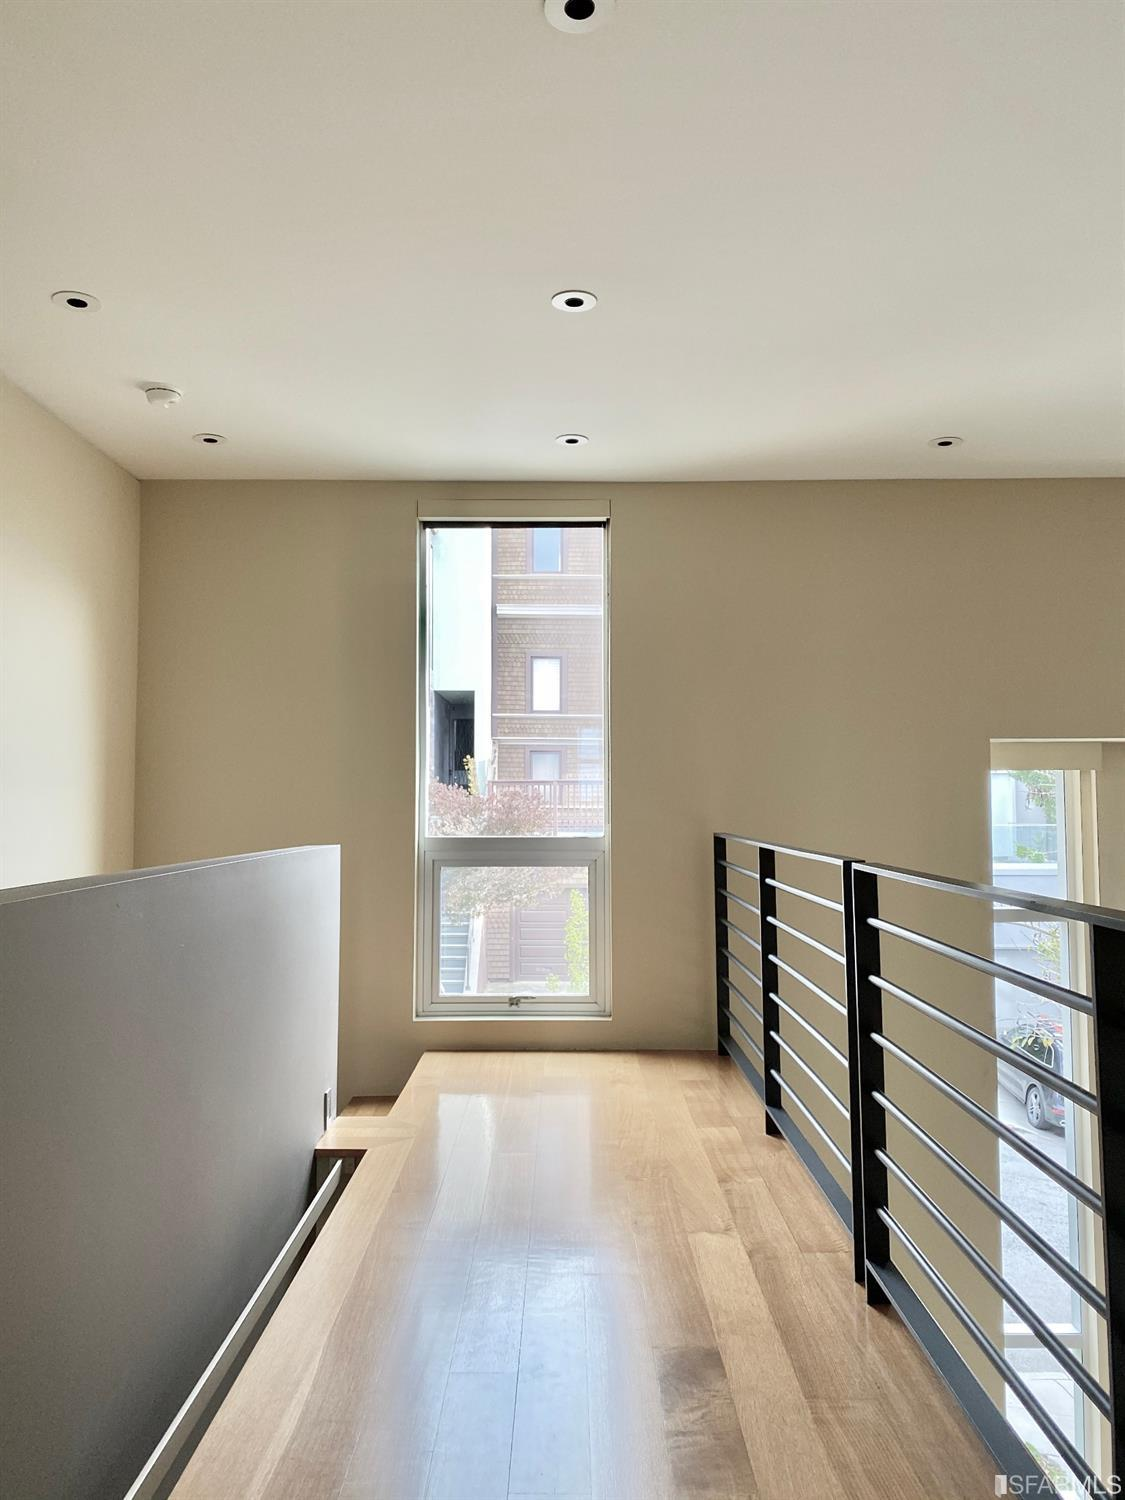 Dramatic upper level catwalk overlooking the double-height living room, and leading to the large master suite